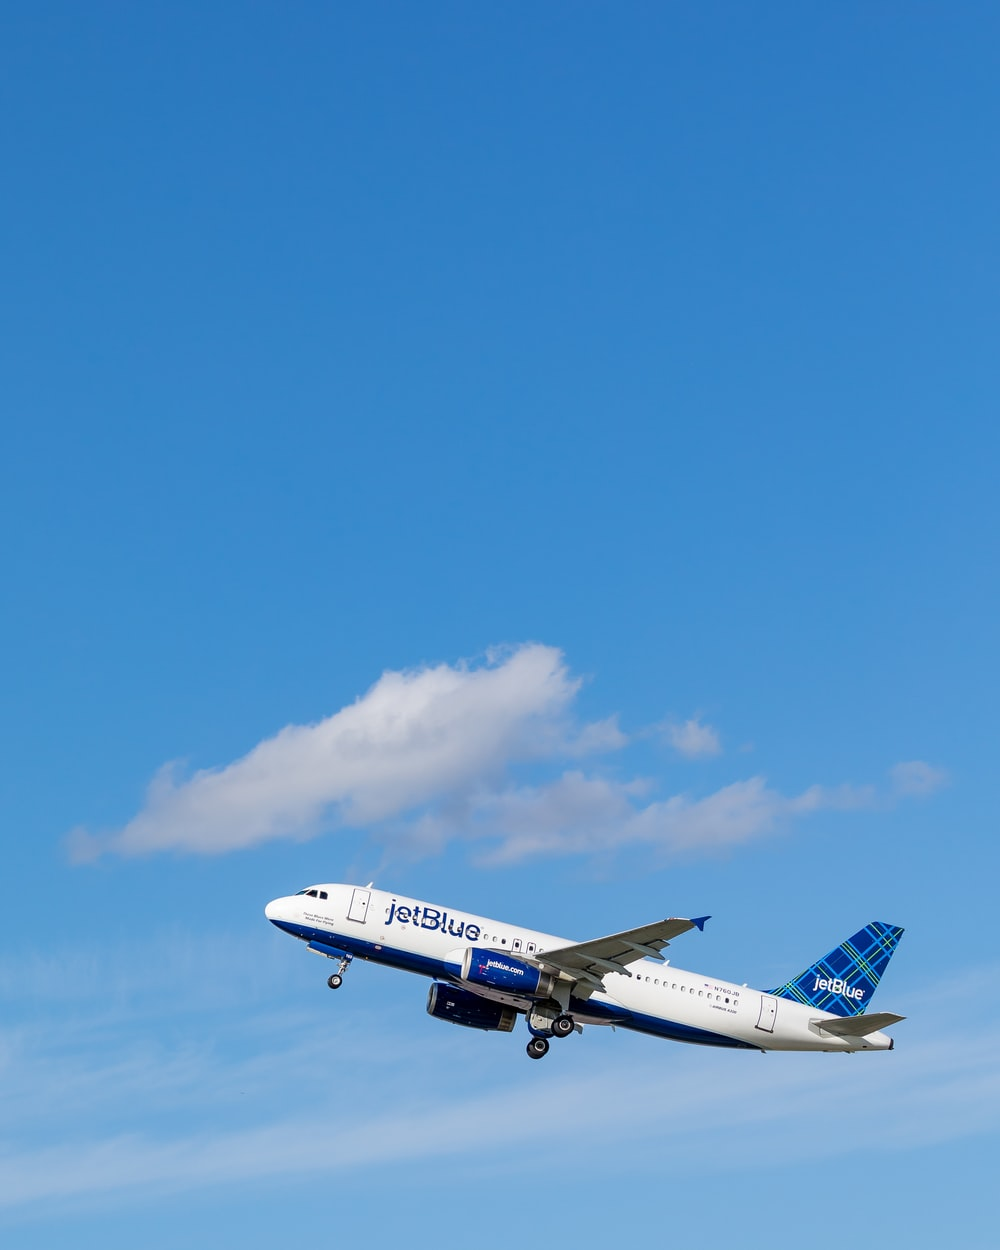 white and blue Jetblue airliner flying on sky